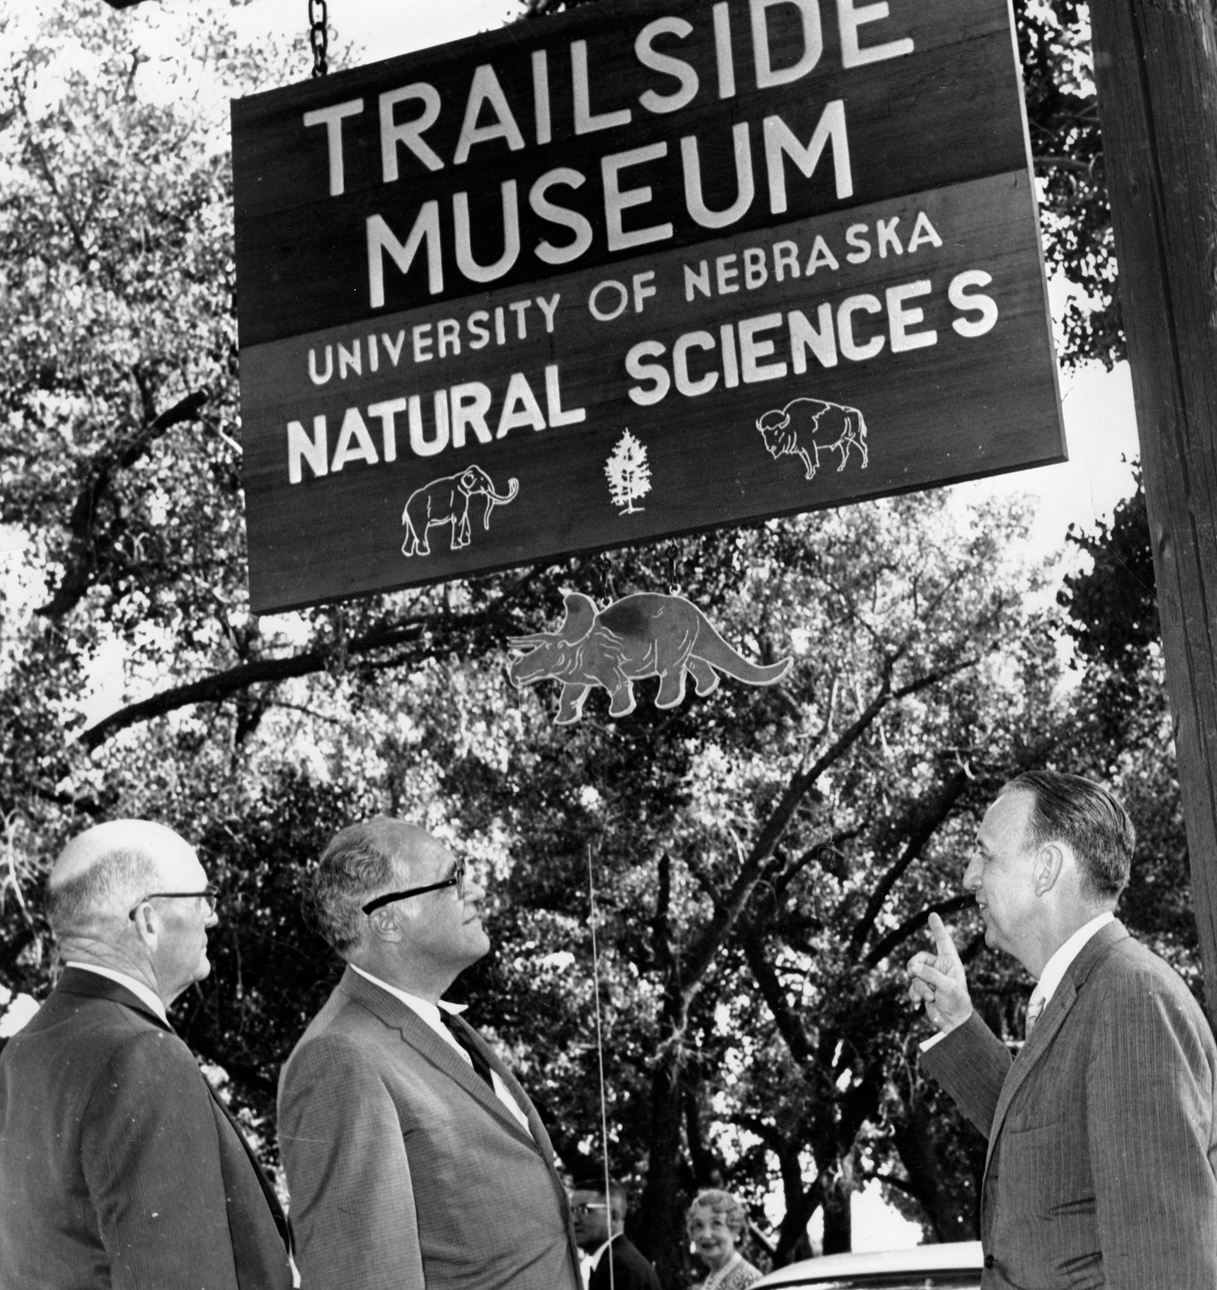 The grand opening of Trailside Museum in June 1961: from left, state senator George Gerdes, Gov. Frank B. Morrison, State Museum Director C. Bertrand Schultz